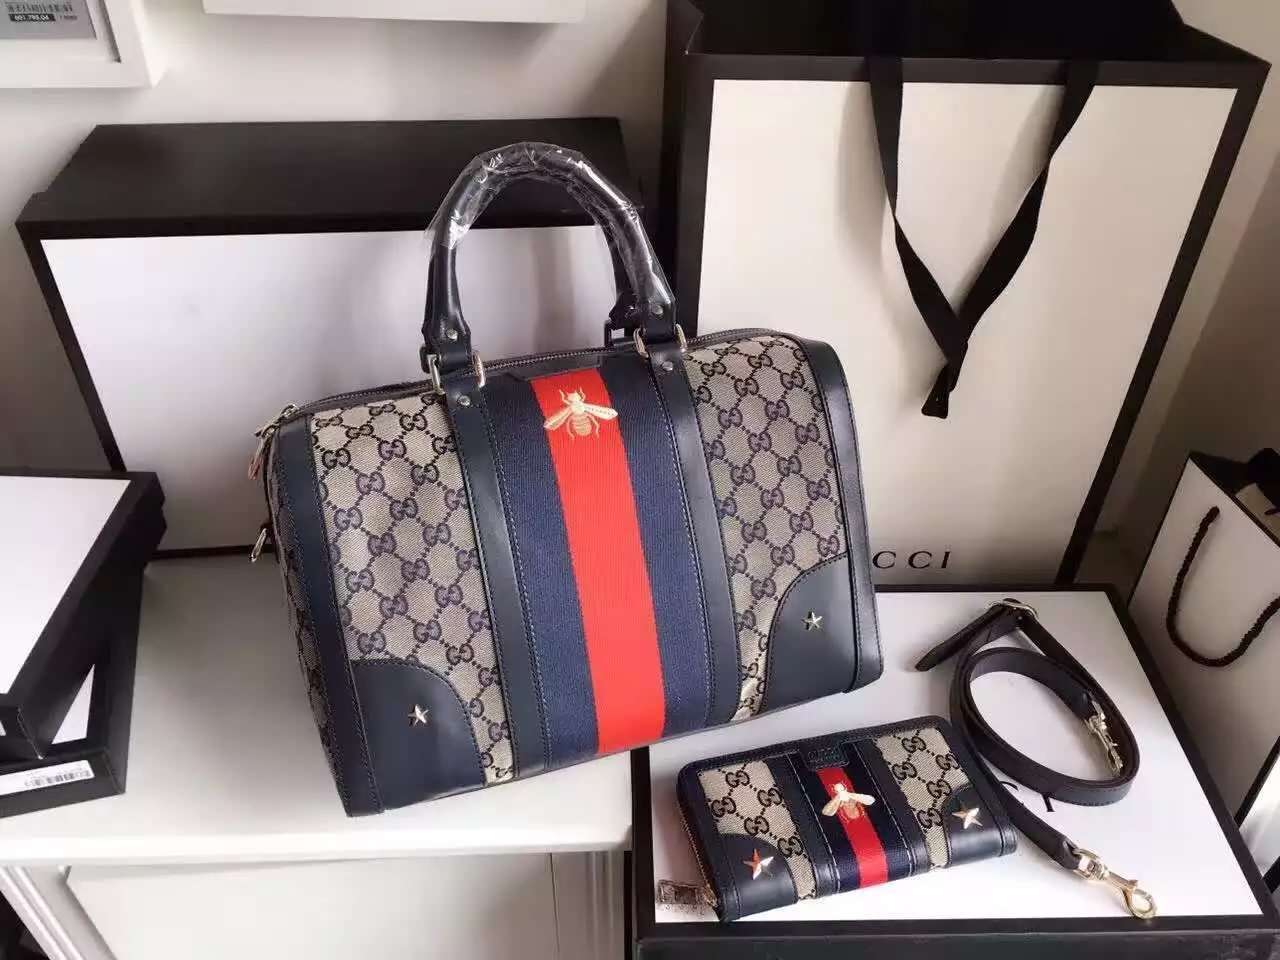 gucci Bag, ID : 59594(FORSALE:a@yybags.com), ladies gucci bags, buy gucci bag online, gucci discount backpacks, gucci ladies leather handbags, sale gucci, gucci cheap kids backpacks, gucci handbags outlet, gucci in america, gucci small womens wallet, gucci hunting backpacks, gucci online sale 2016, gucci ladies backpacks #gucciBag #gucci #gucci #luggage #backpack